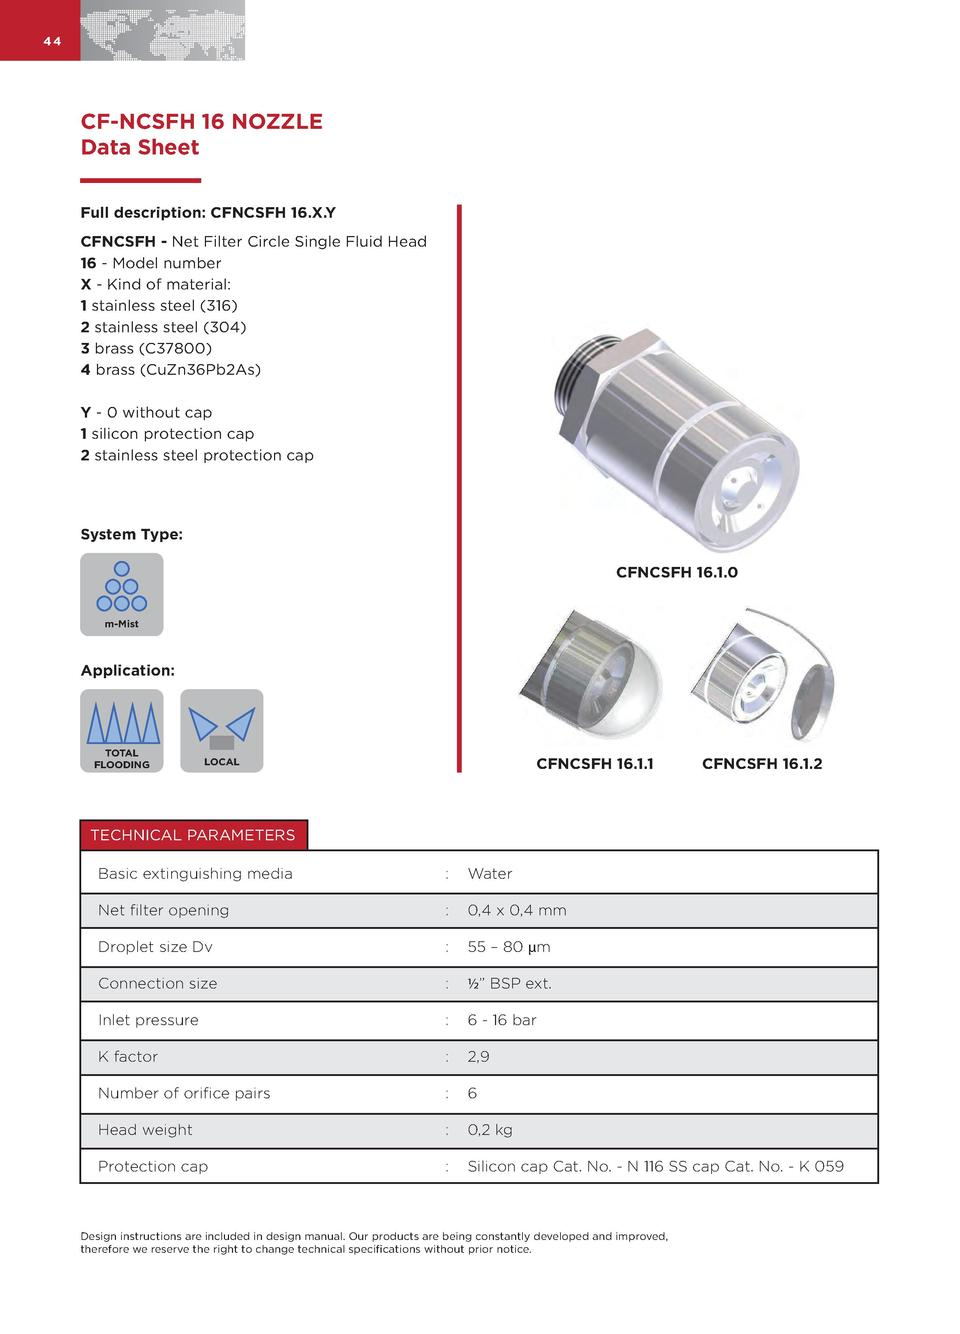 44  CF-NCSFH 16 NOZZLE Data Sheet Full description  CFNCSFH 16.X.Y CFNCSFH - Net Filter Circle Single Fluid Head 16 - Mode...